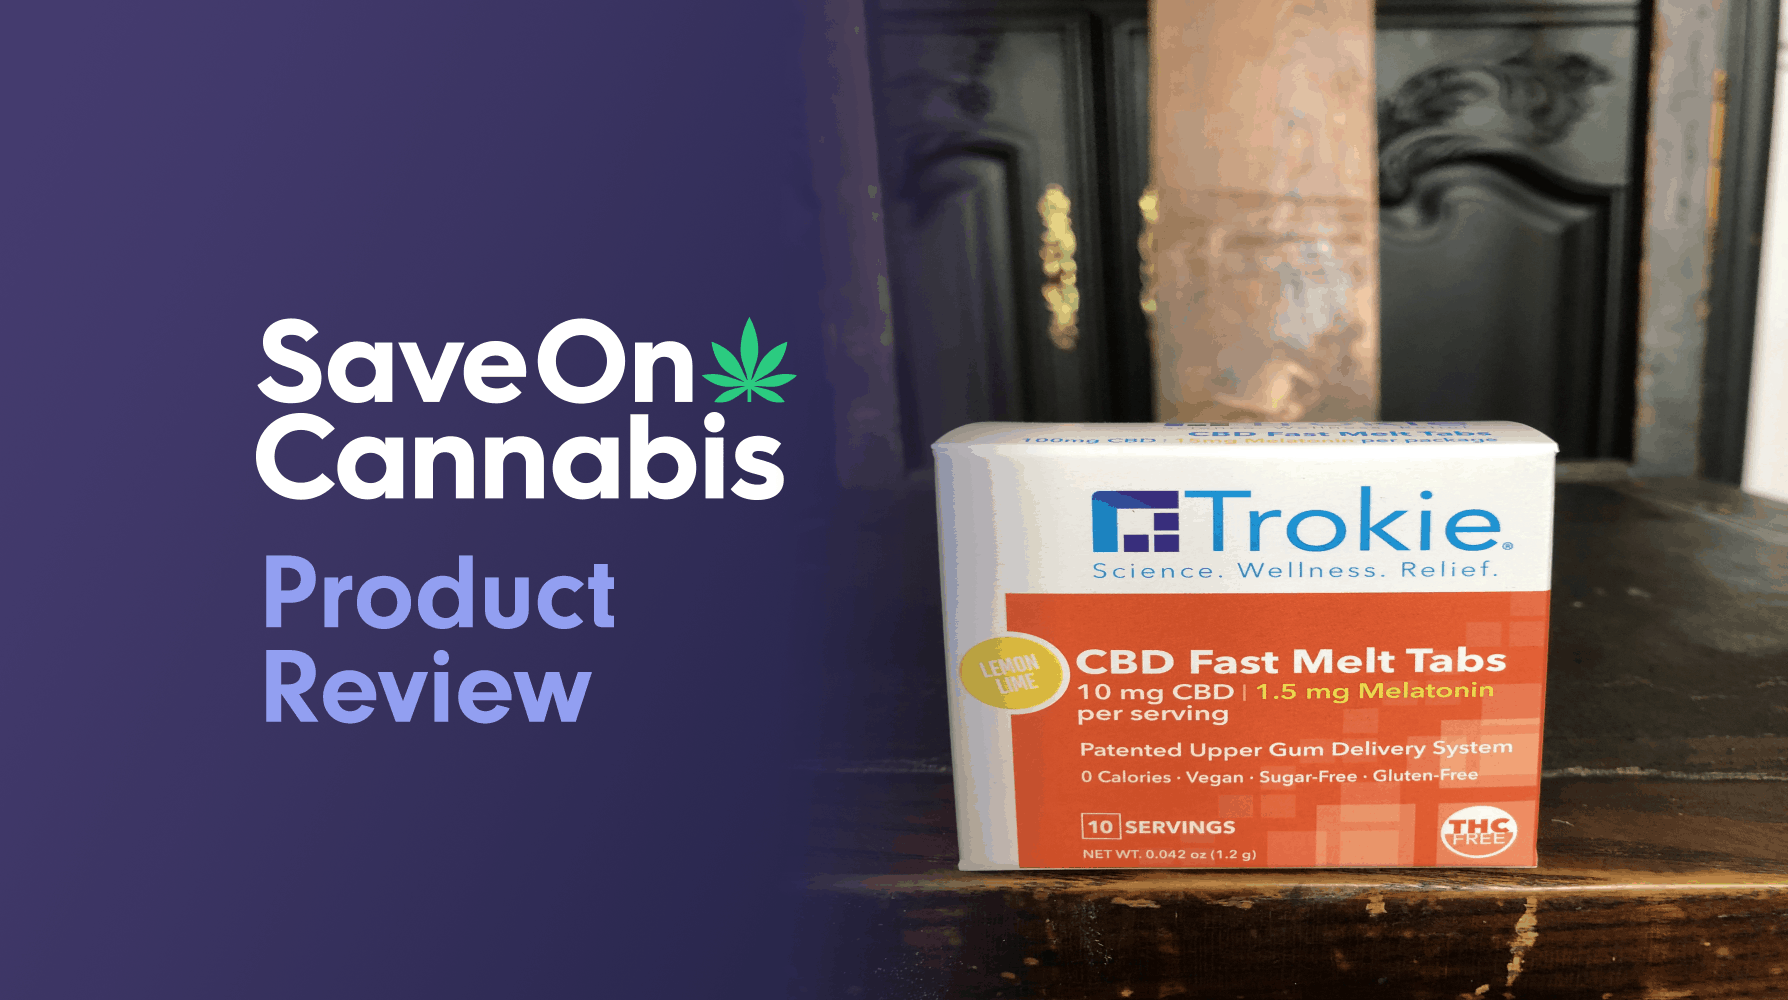 Trokie CBD Fast Melt Tabs With Melatonin Save On Cannabis Review Website